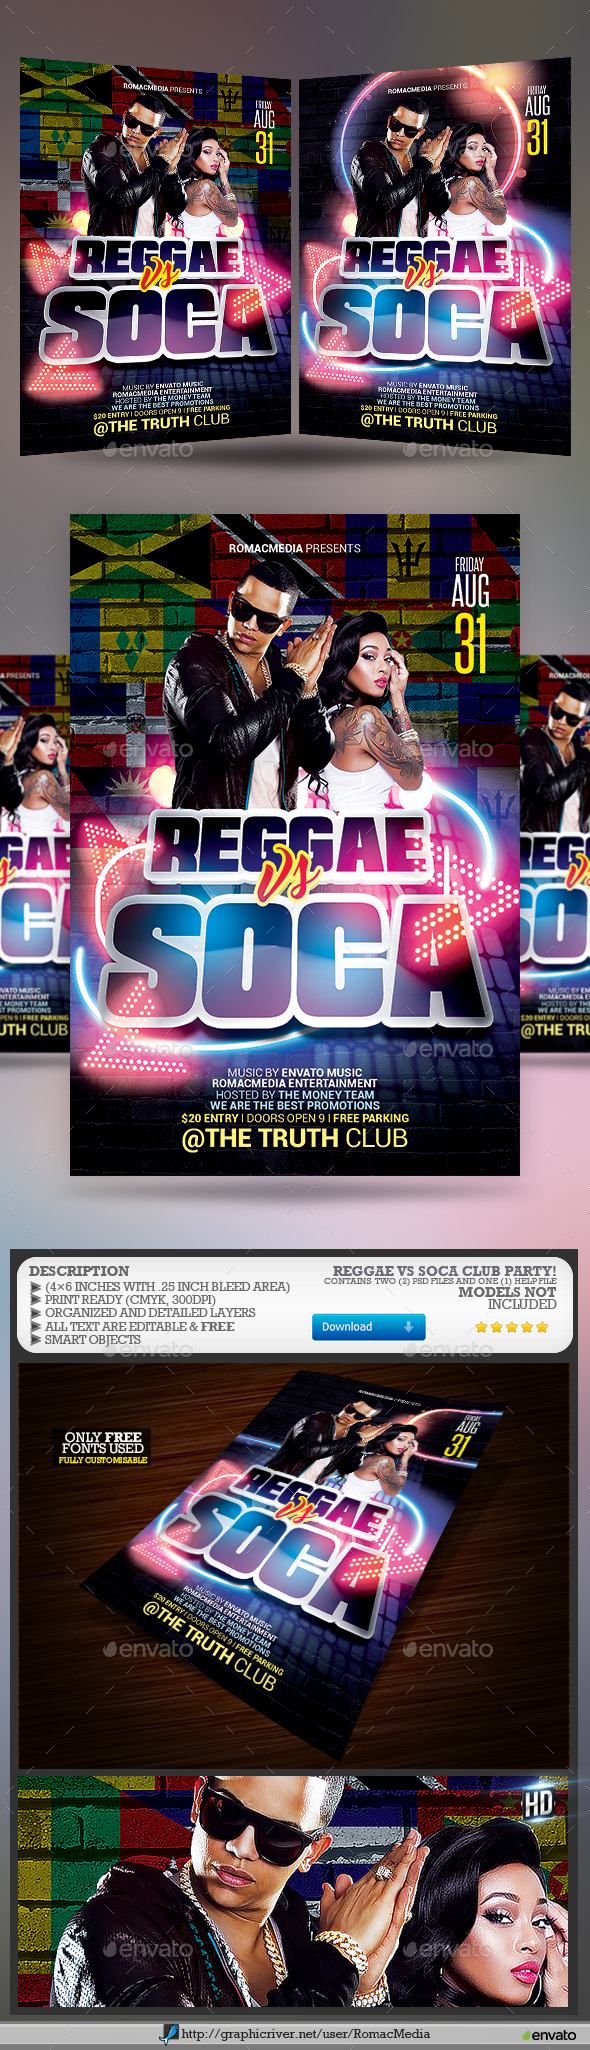 Reggae vs Soca Club Party Flyer - Clubs & Parties Events